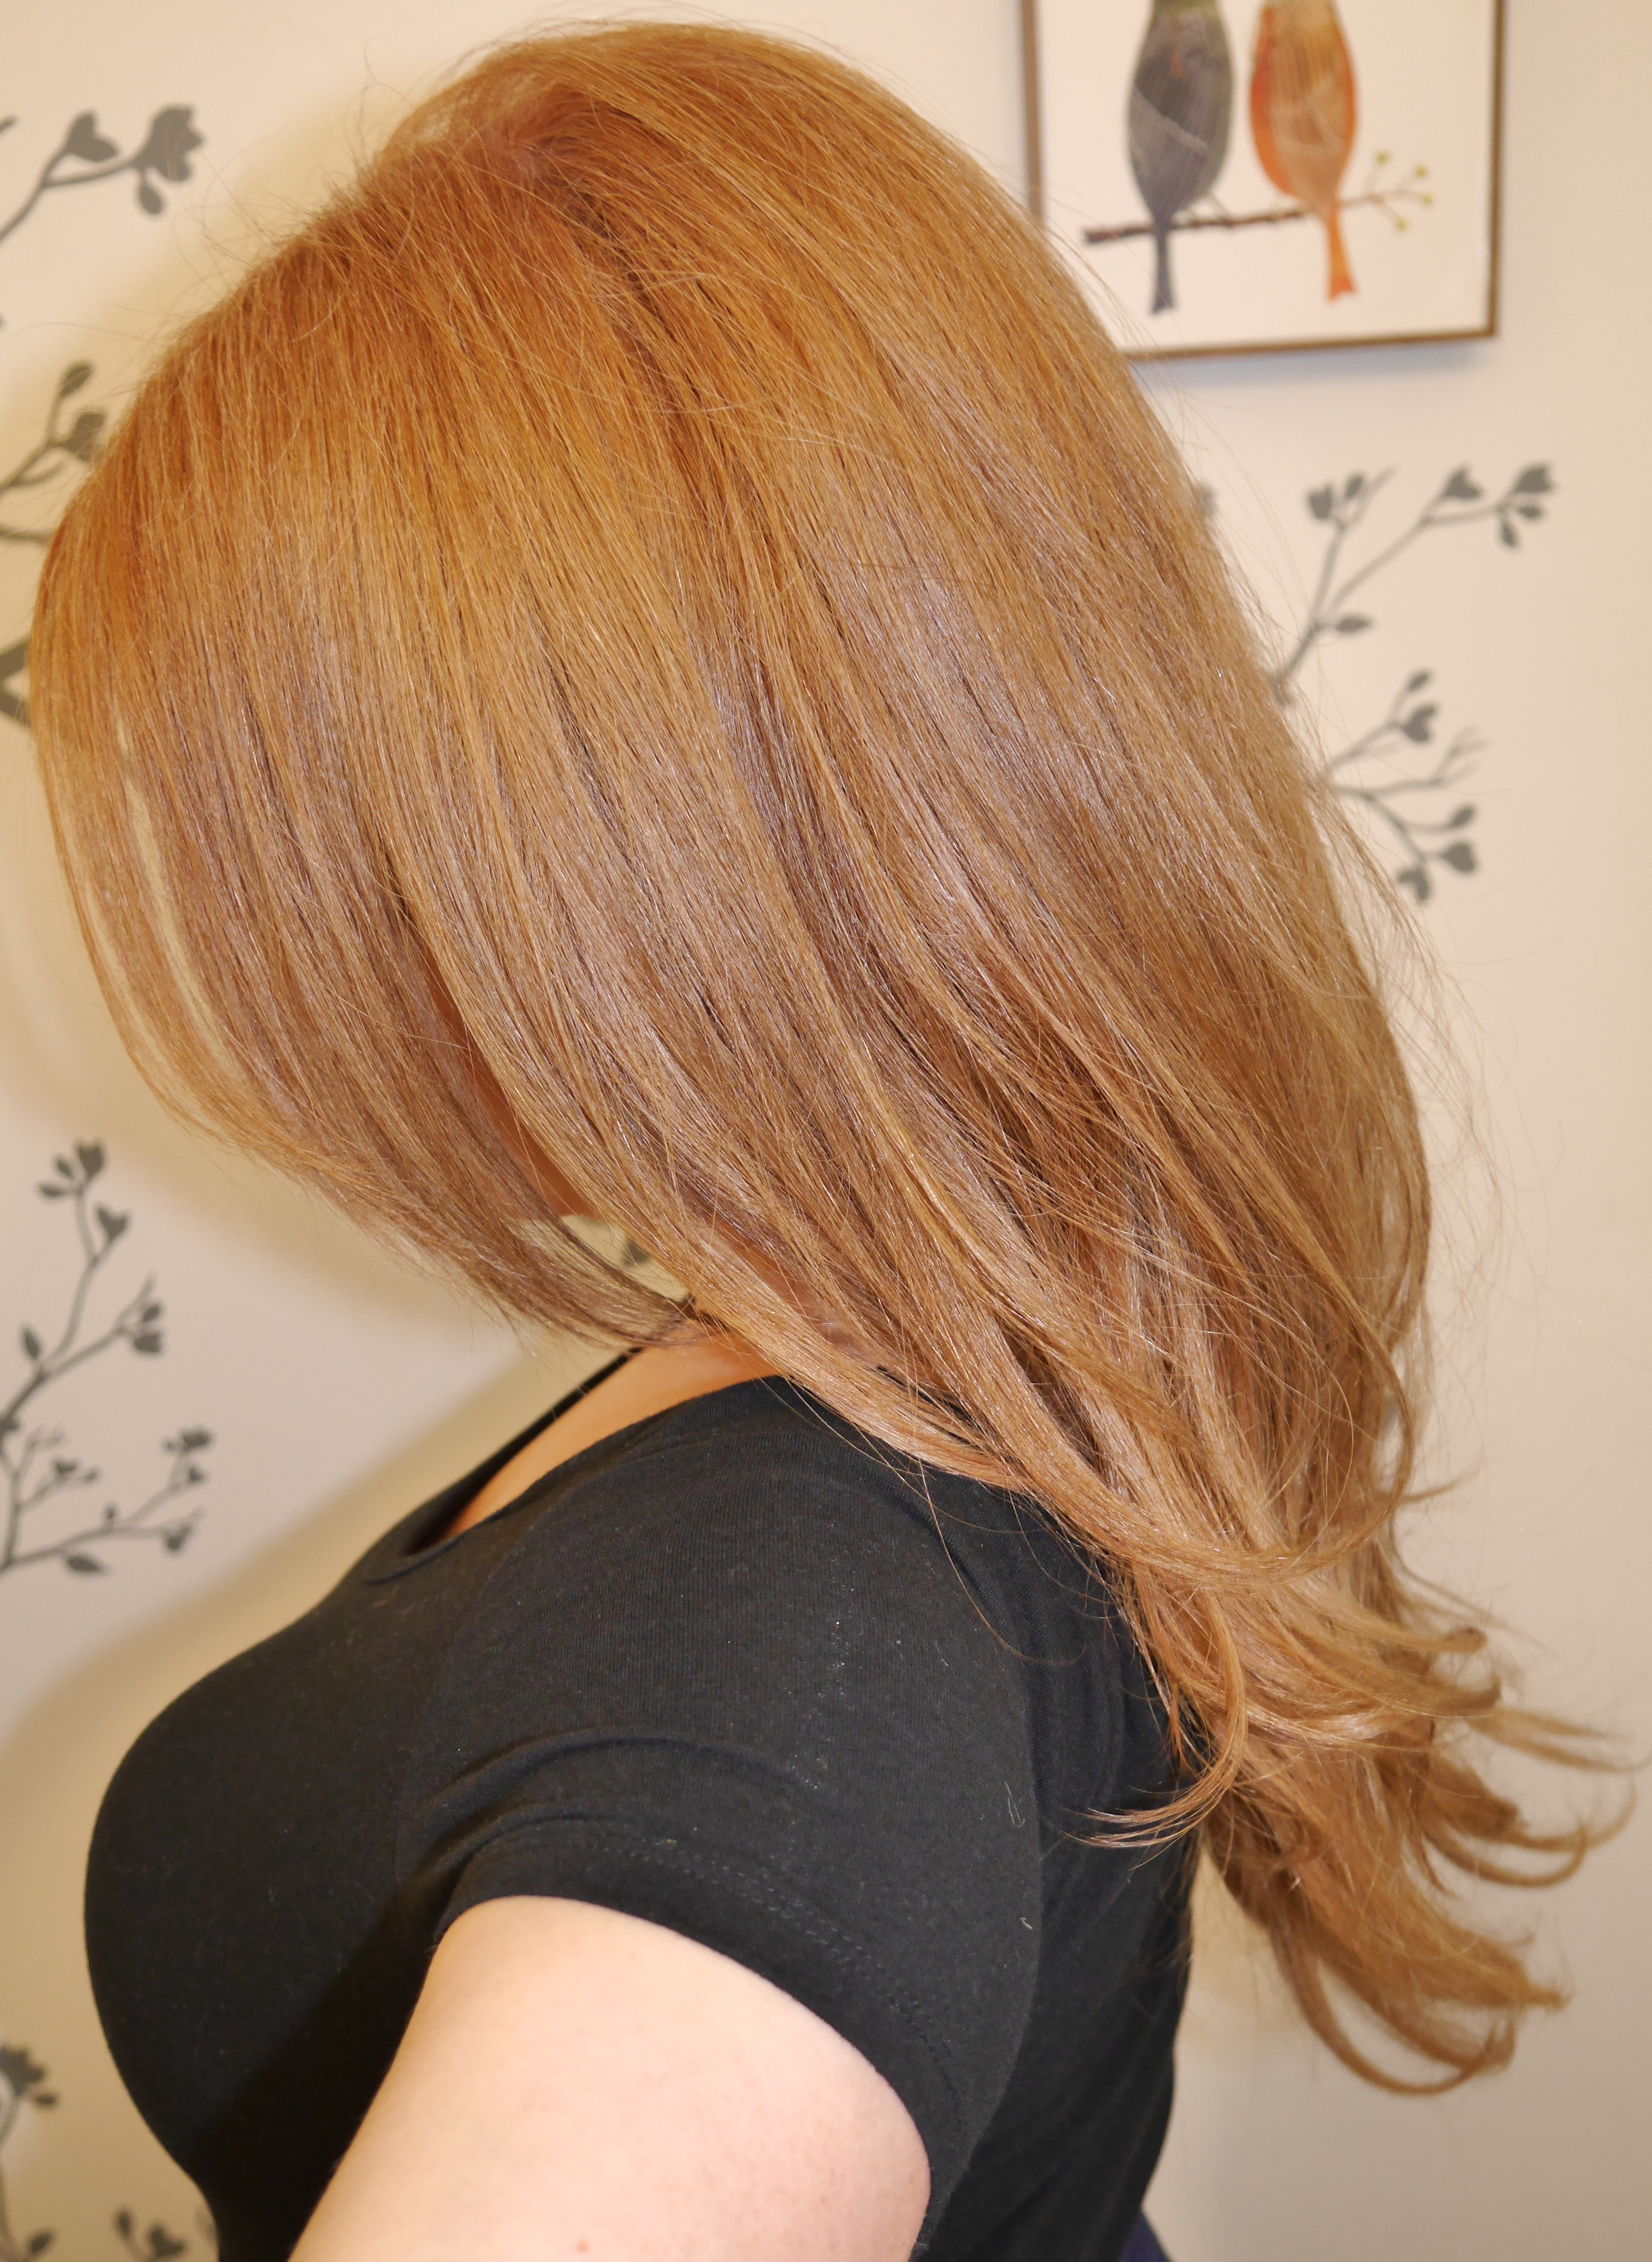 color-charm-strawberry-blonde-hair-titian-blonde-at-home-hair-color